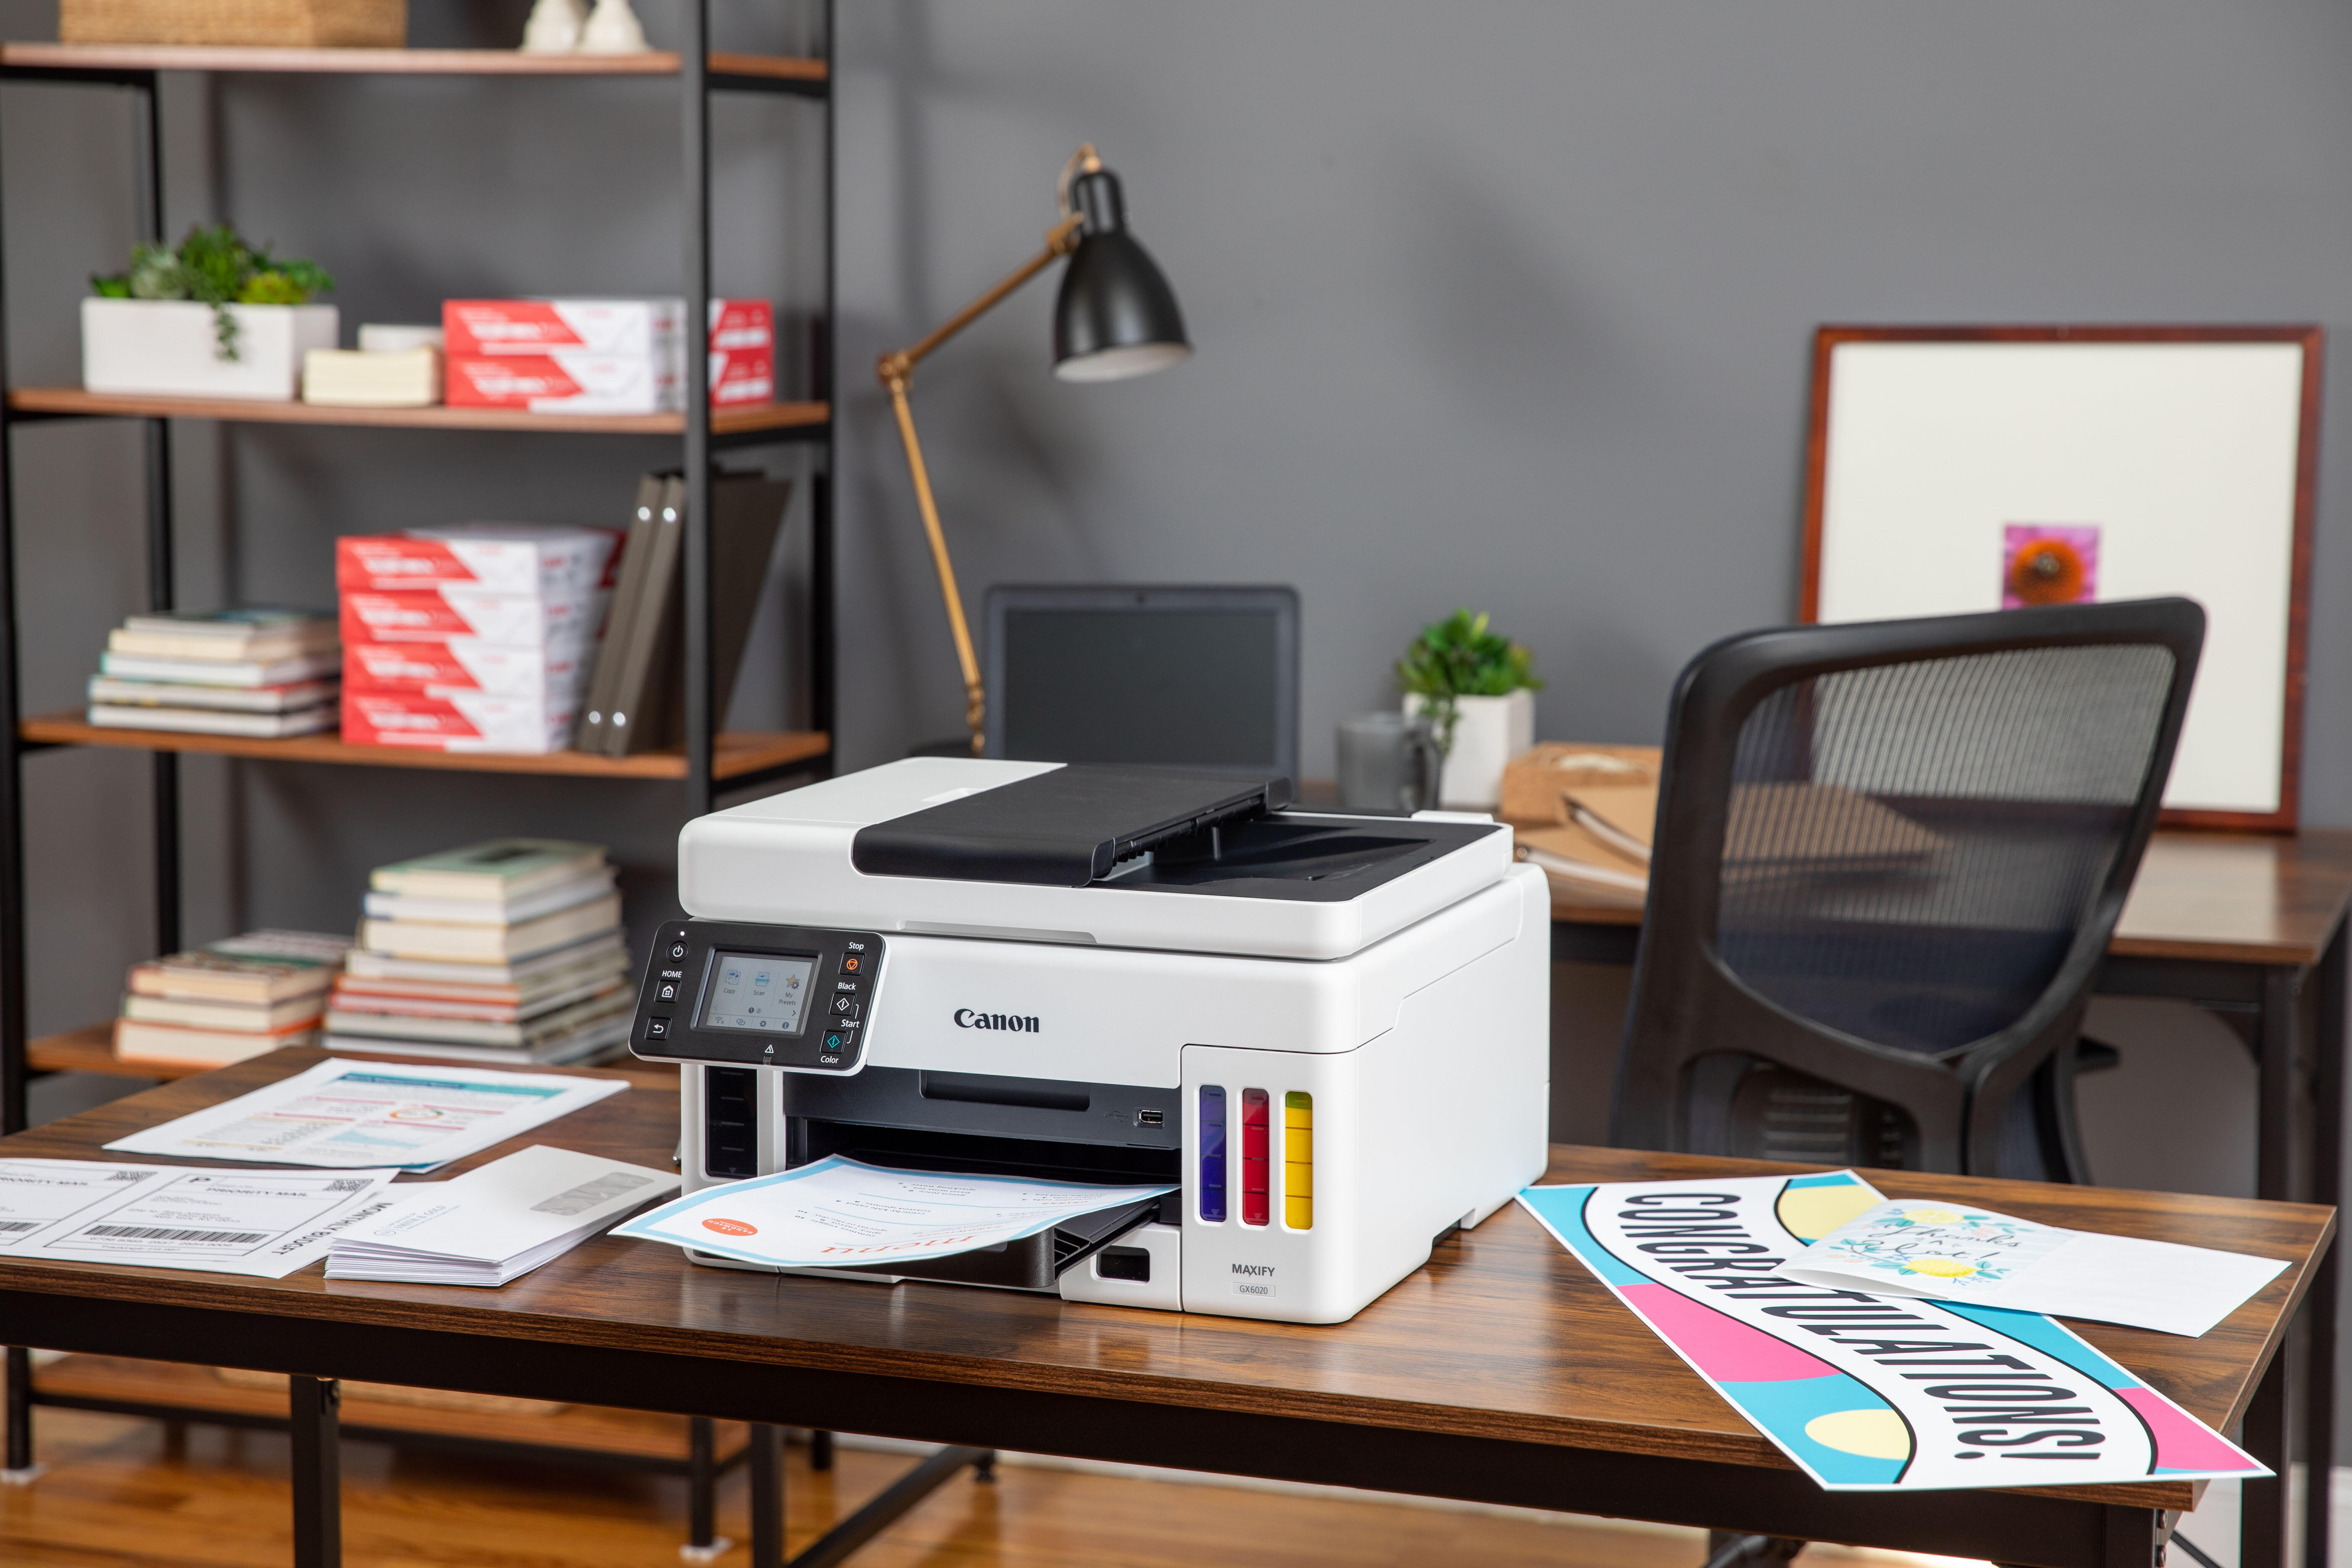 Canon's new printers cater to first-time users, photo enthusiasts and office workers